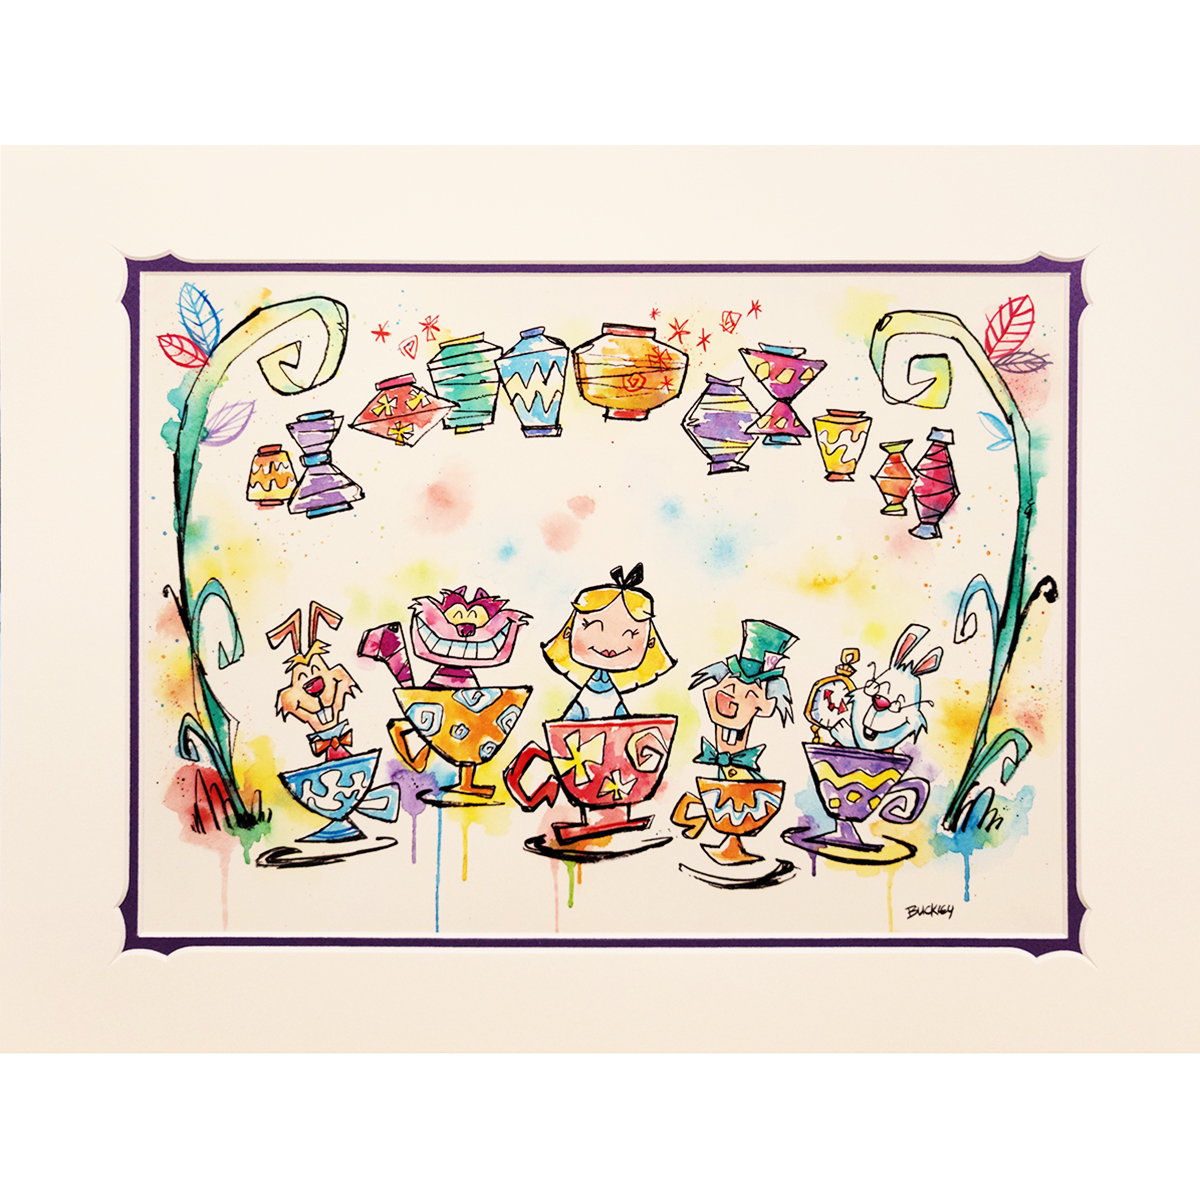 Disney Artist Print - David Buckley - Time for a Tea Party